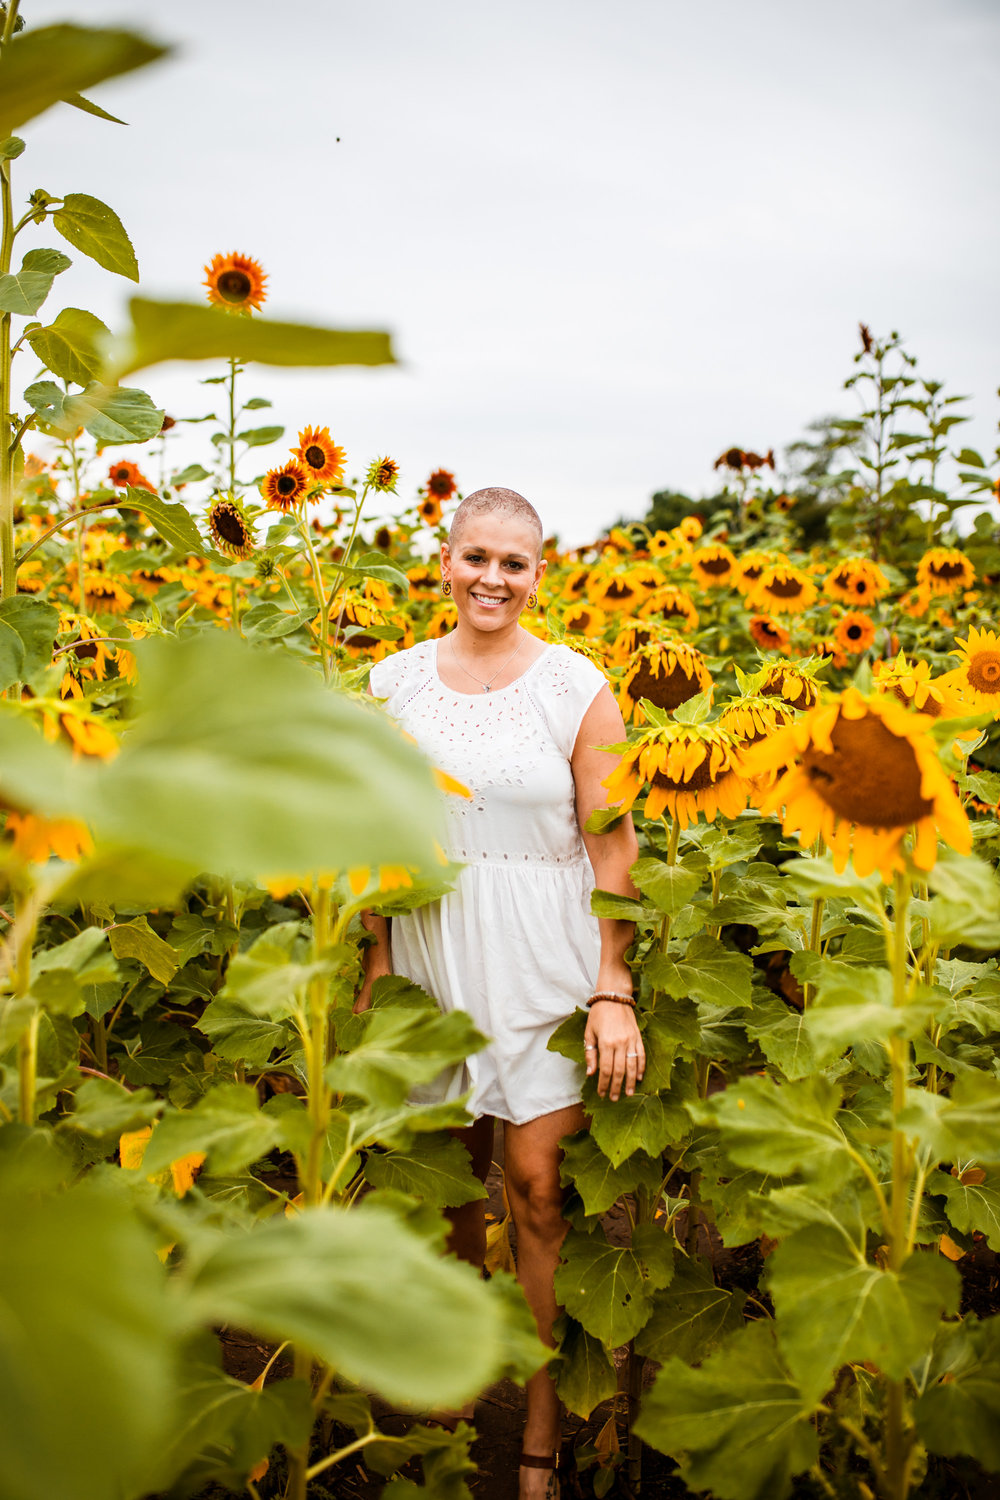 Steph_Sunflowers-24.jpg